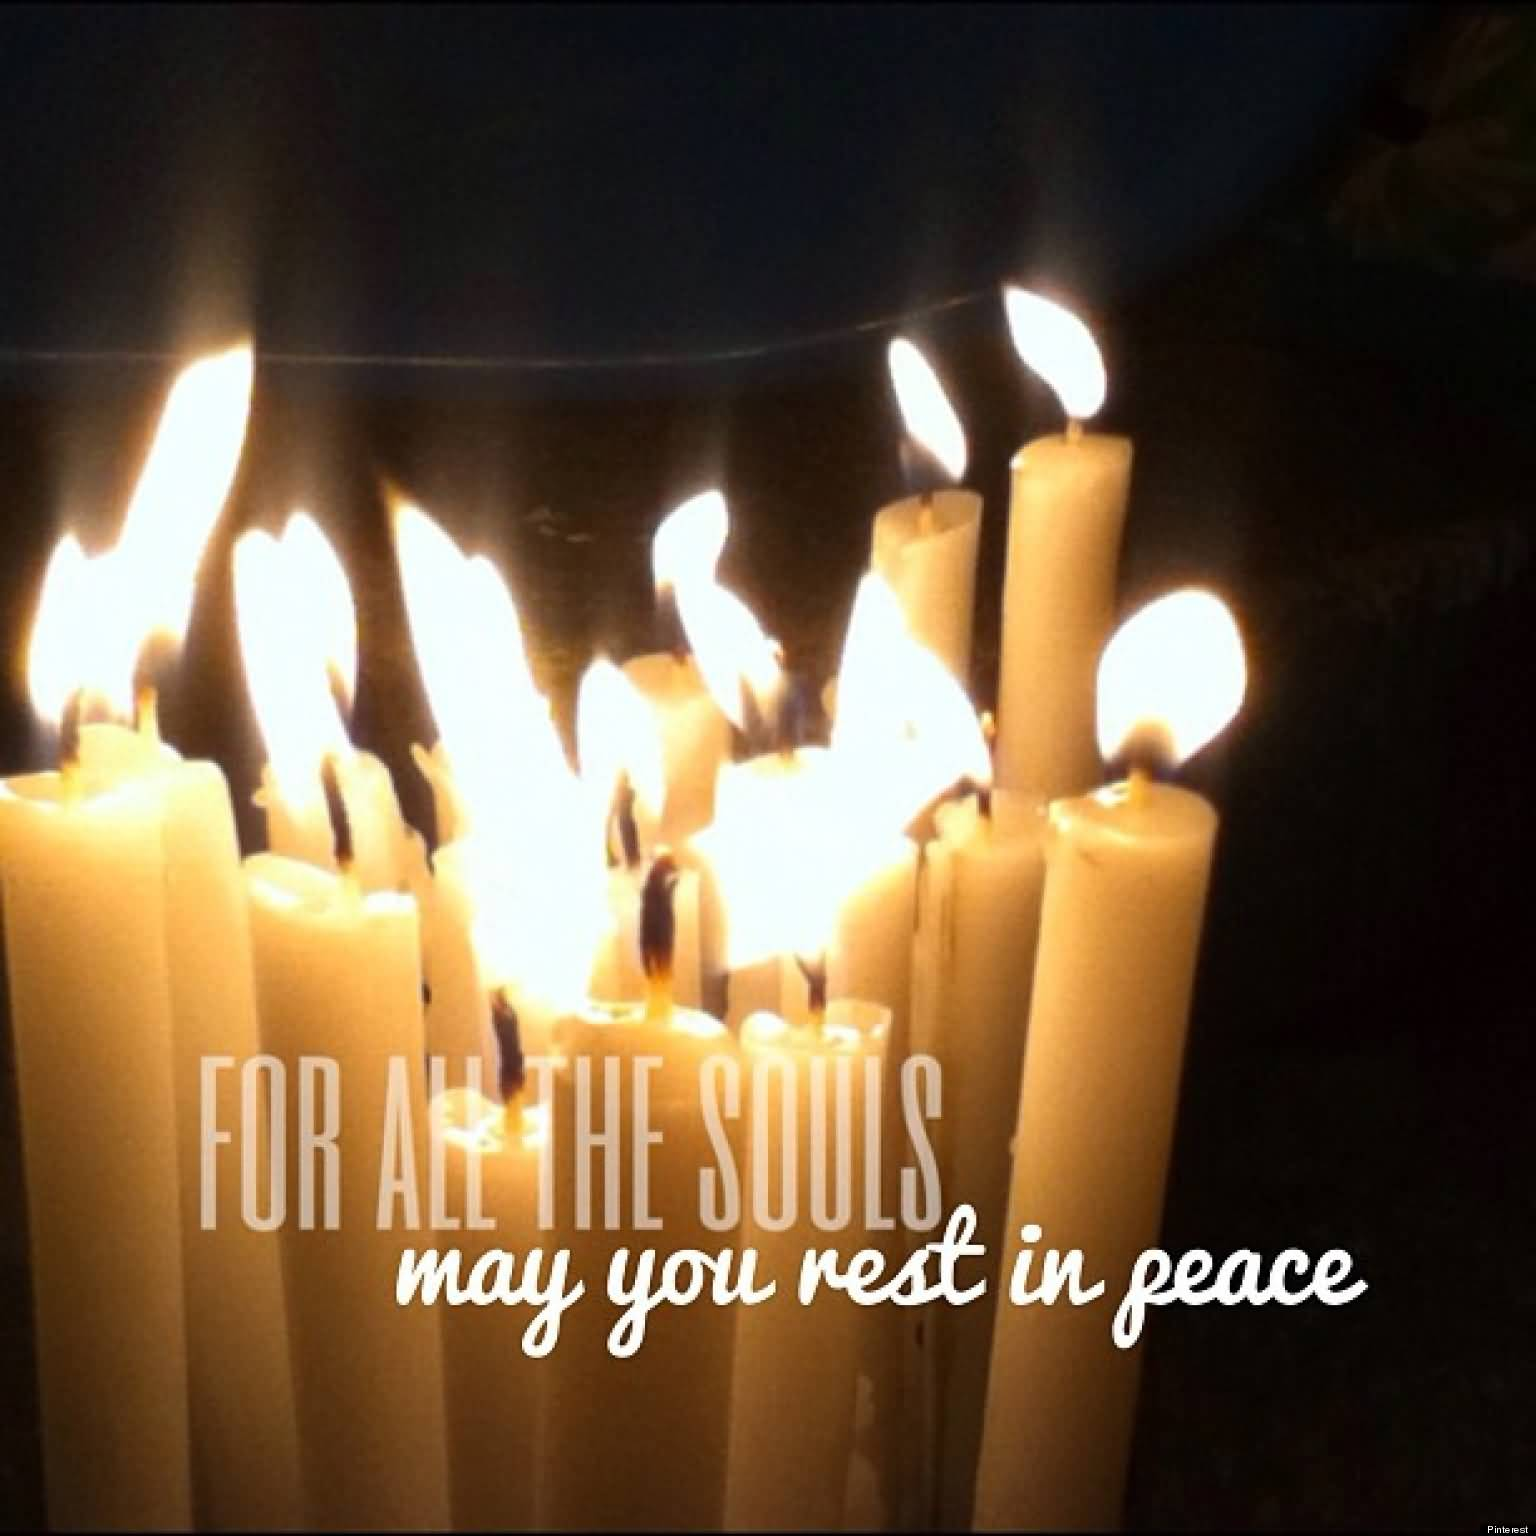 For all the souls may you rest in peace all souls day candles picture